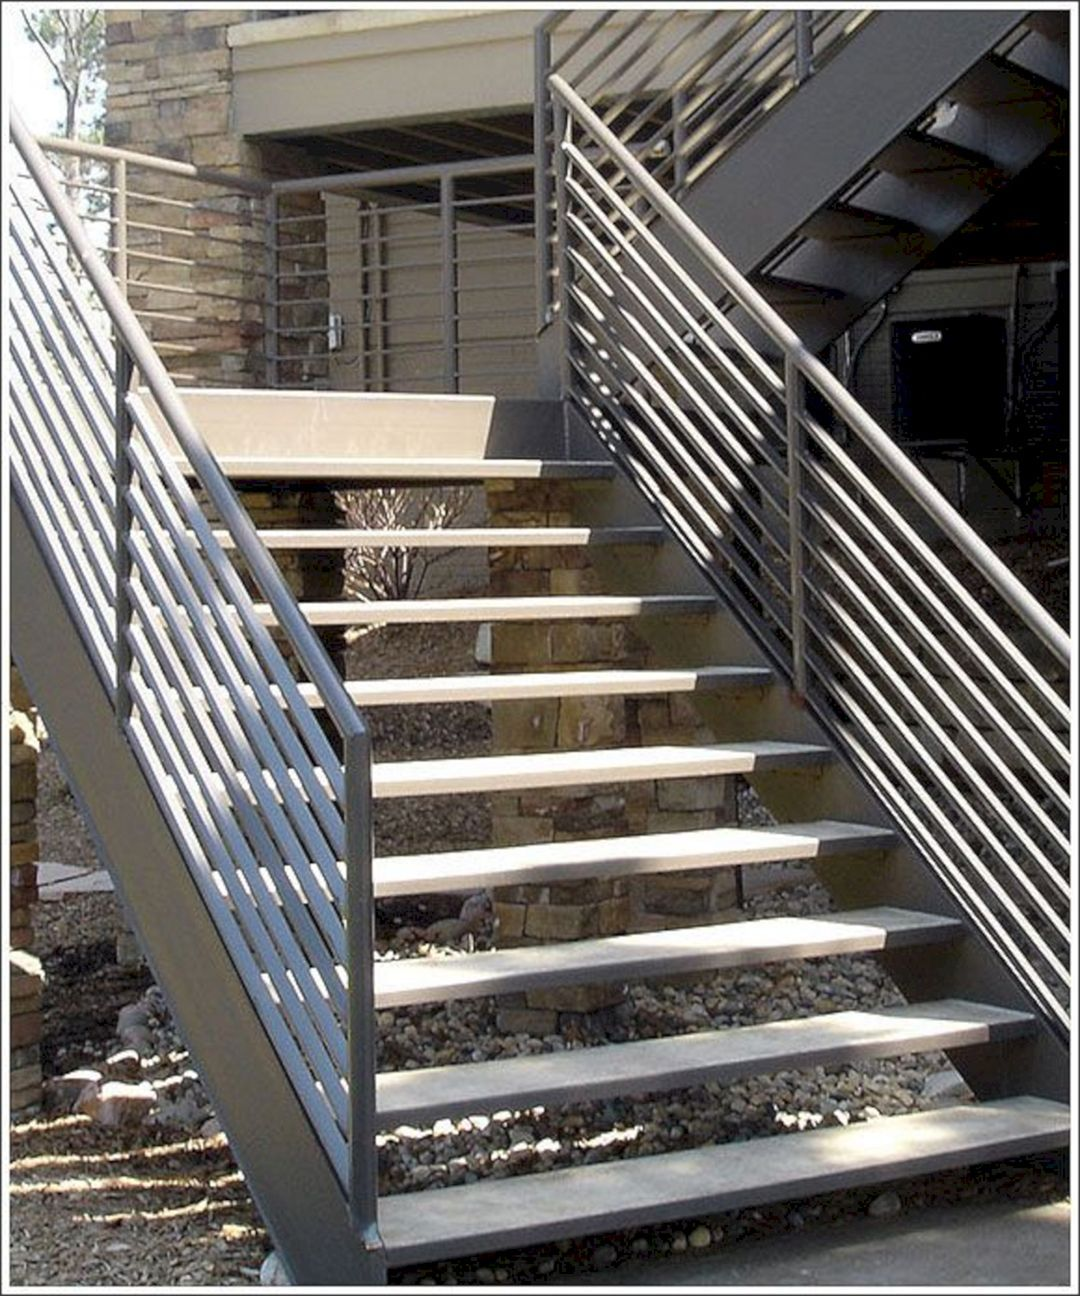 25 Marvelous Outdoor Stairway Ideas For Creative Home Design - Exterior-stairs-designs-creative